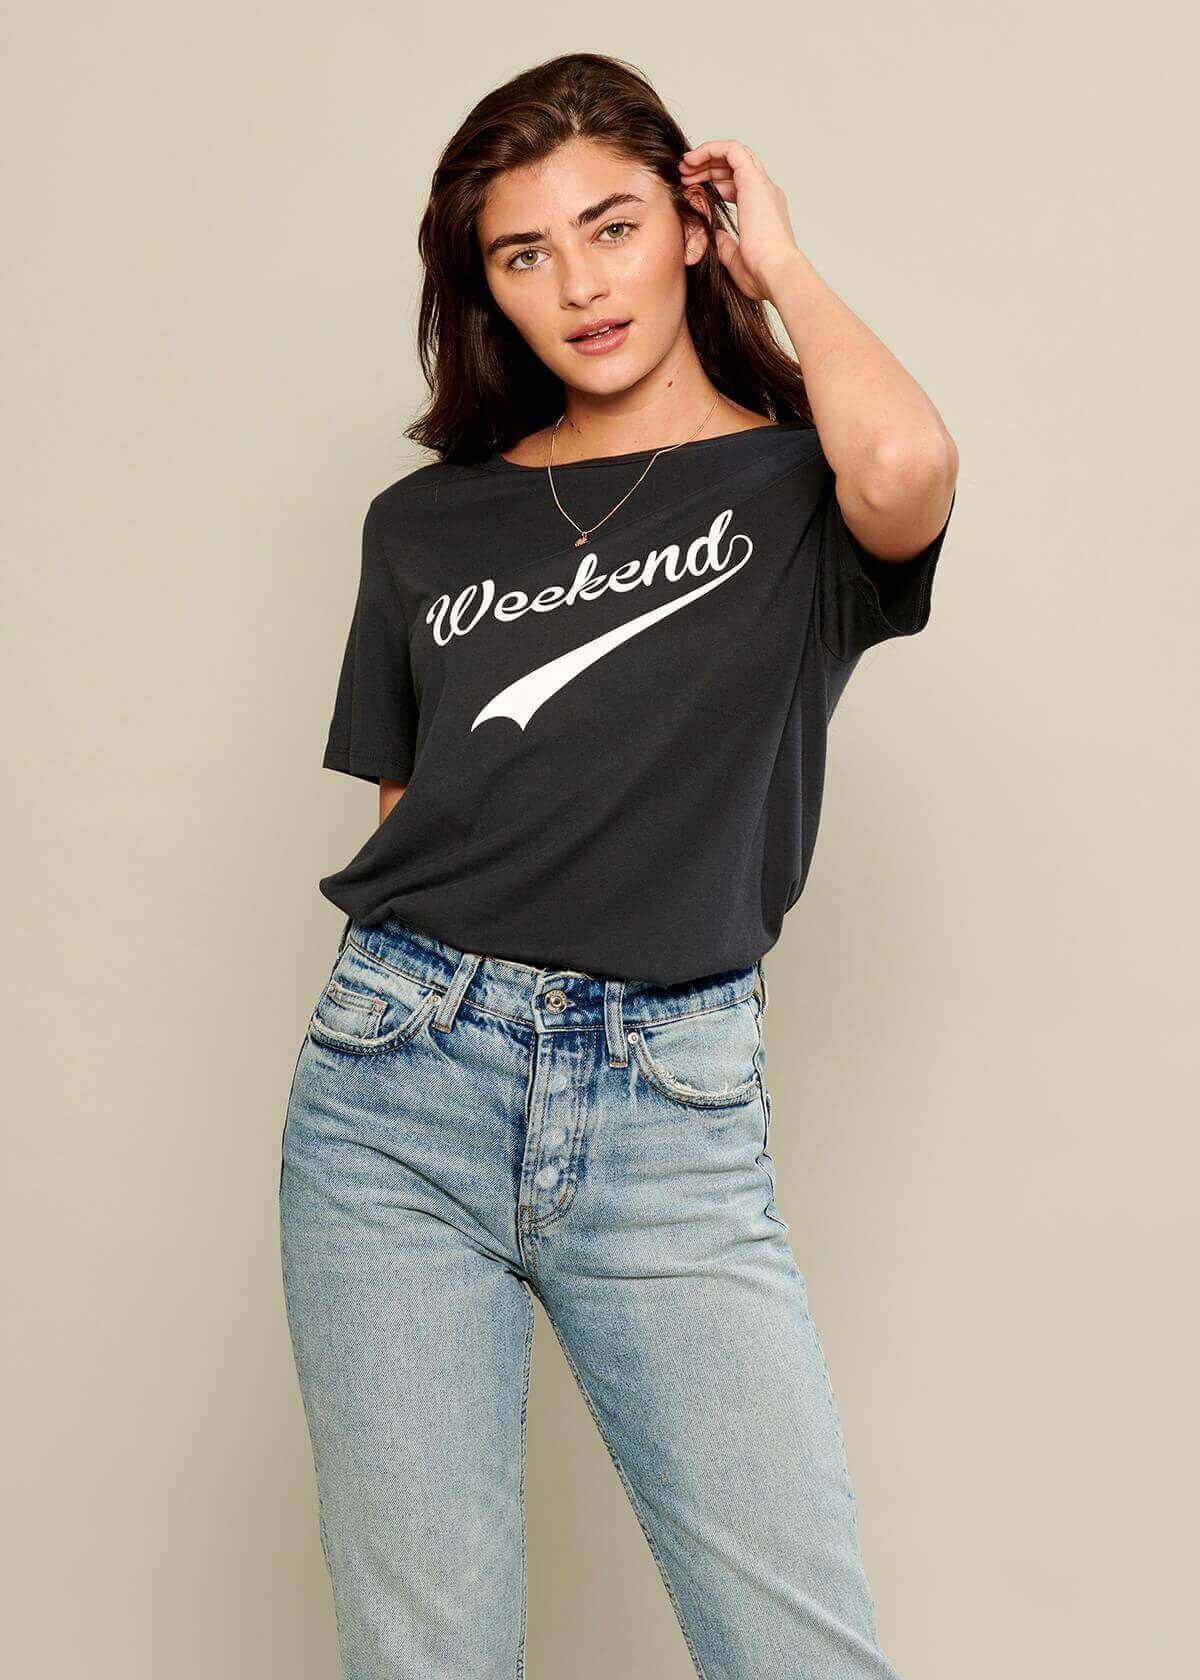 Lola - Loose Tee - Weekend - Black